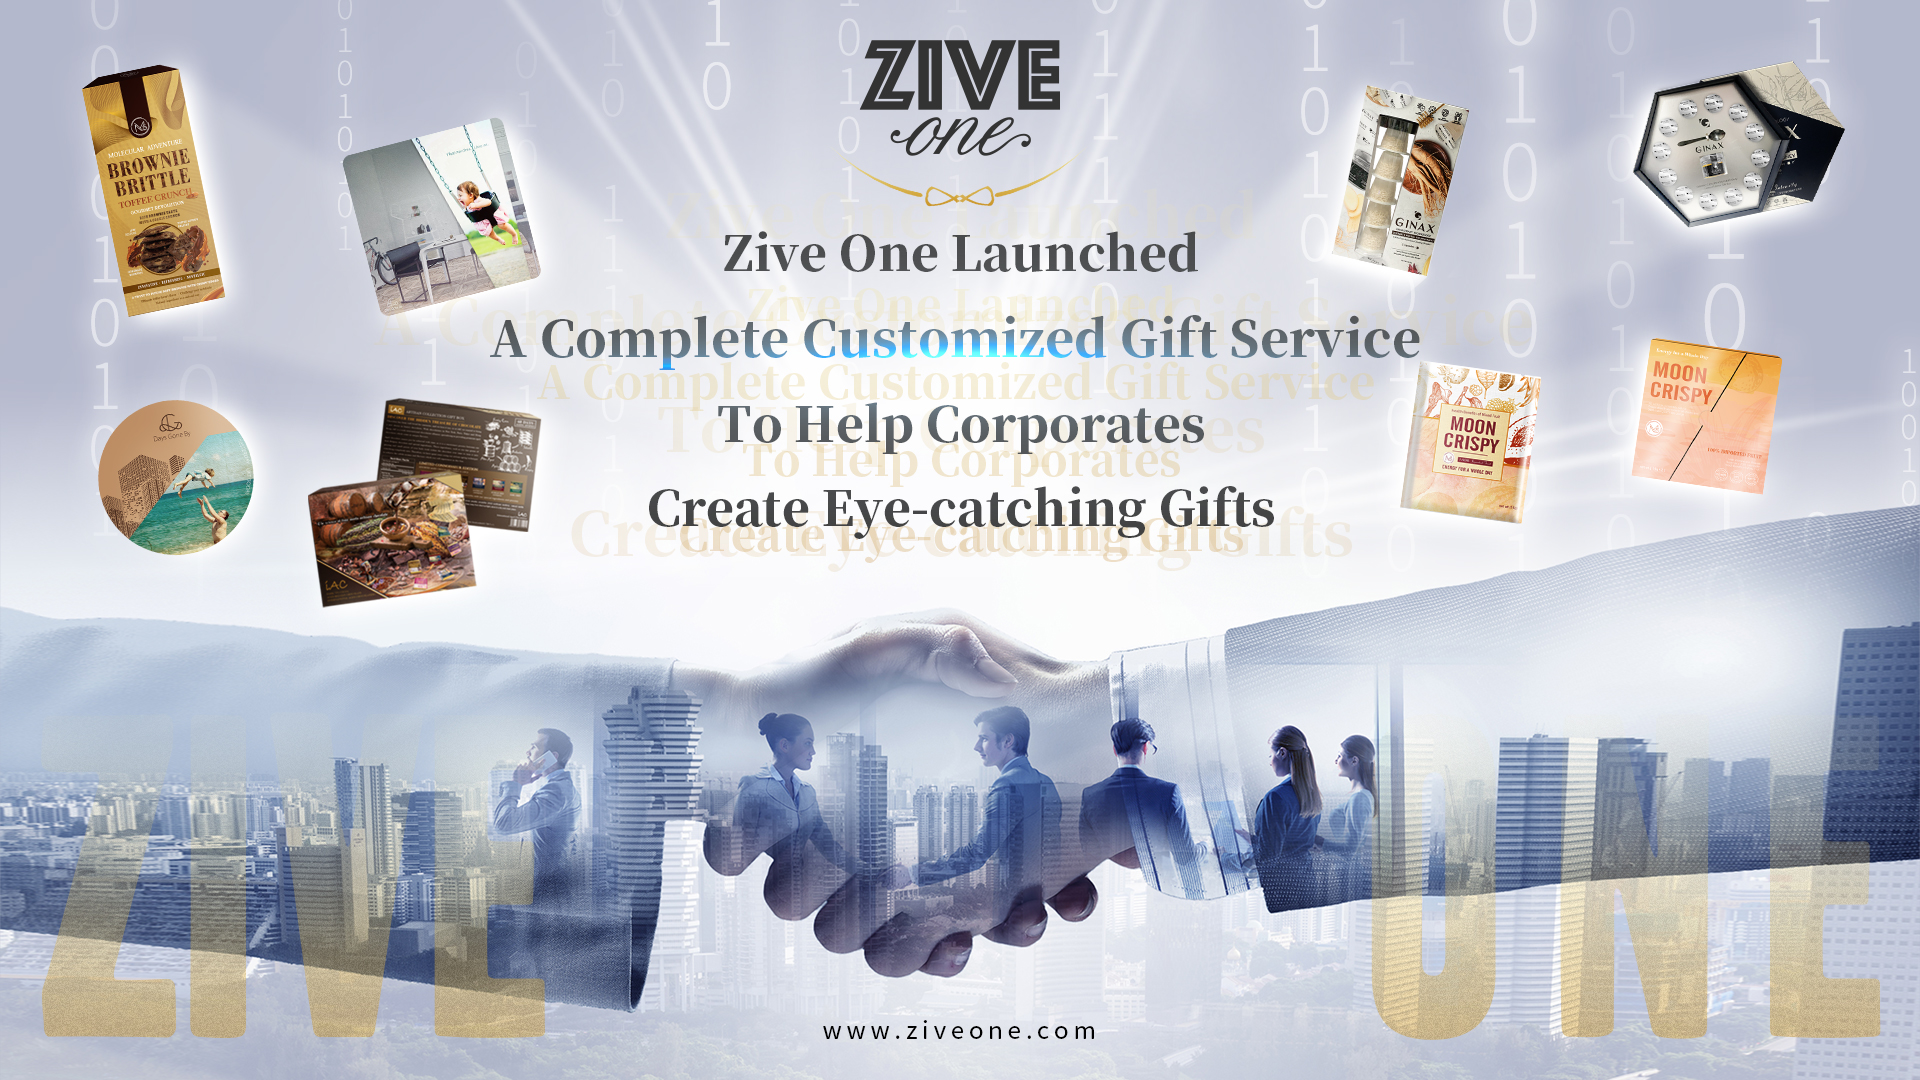 Zive One Launched A Complete Customized Gift Service To Help Corporates Create Eye-catching Gifts